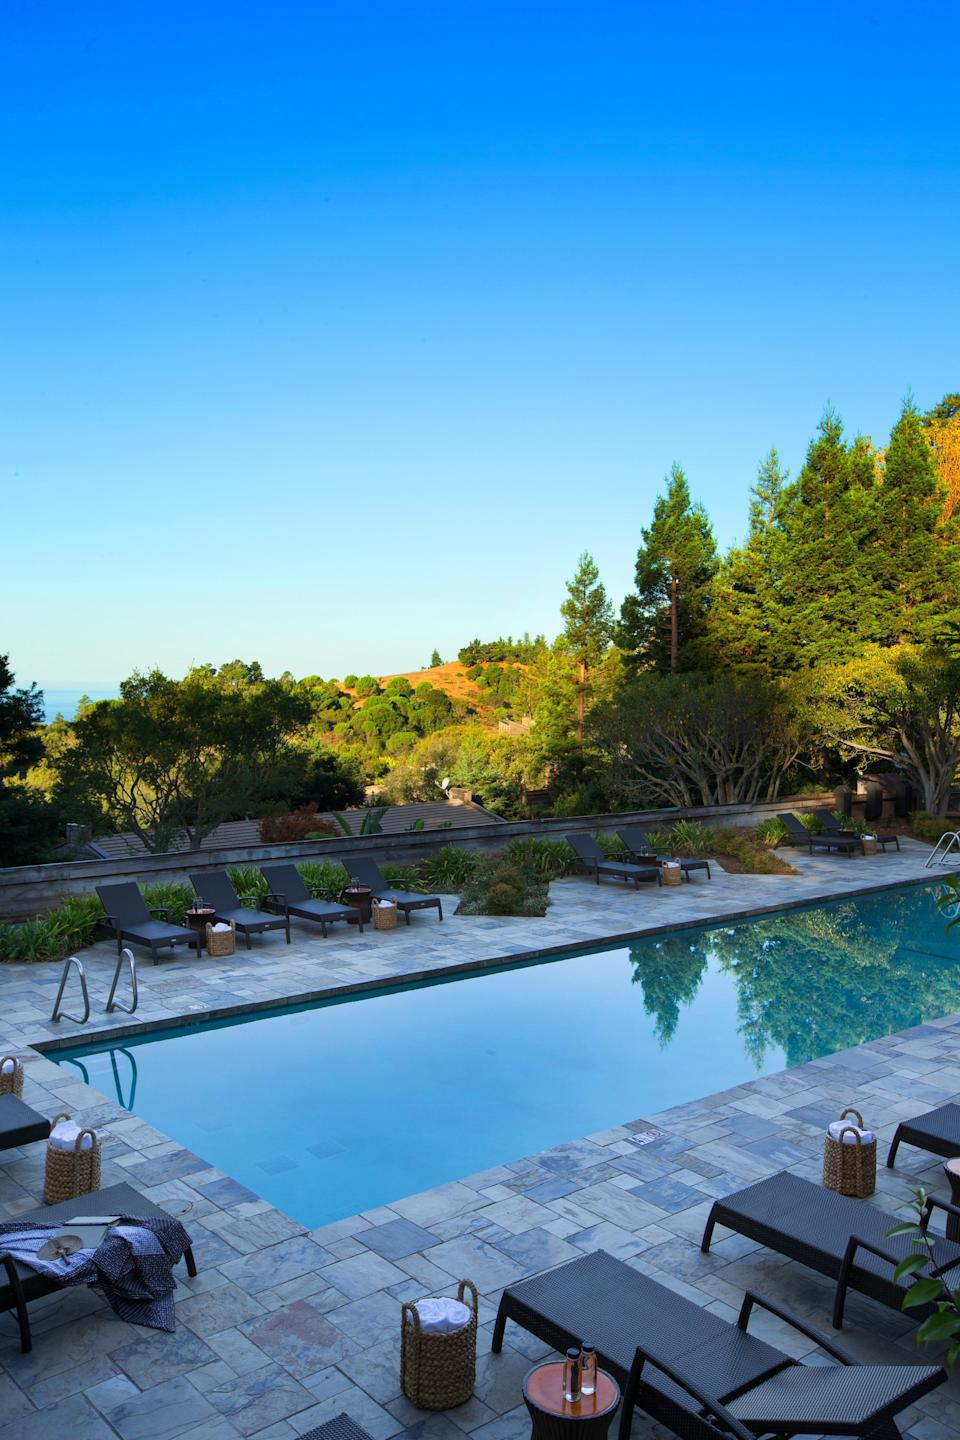 """This beloved <a href=""""https://www.cntraveler.com/story/3-days-in-monterey-and-big-sur?mbid=synd_yahoo_rss"""" rel=""""nofollow noopener"""" target=""""_blank"""" data-ylk=""""slk:Big Sur"""" class=""""link rapid-noclick-resp"""">Big Sur</a> resort dramatically overlooking the Pacific and surrounded by acres of forest received a total reboot in 2017. And while it may look new—rooms have all been updated with plenty of wood and neutrals, 15 luxe safari-style tents have been added to the roster (though tent guests don't currently have access to the resort, and are no longer subject to the resort fee) and the spa got a relaxation deck that looks out at the ocean—it hasn't lost its laid-back 1970s vibe. If you want to totally disconnect, and plug in those connectivity-deprived gaps with hiking, forest bathing, spa treatments, and yoga, it's for sure worth it. There really is something for everyone here—except for maybe the type-A person who needs lots of scheduled activities. Big Sur truly is one of the most beautiful places on earth, and Ventana's mission is to spotlight and champion its setting."""